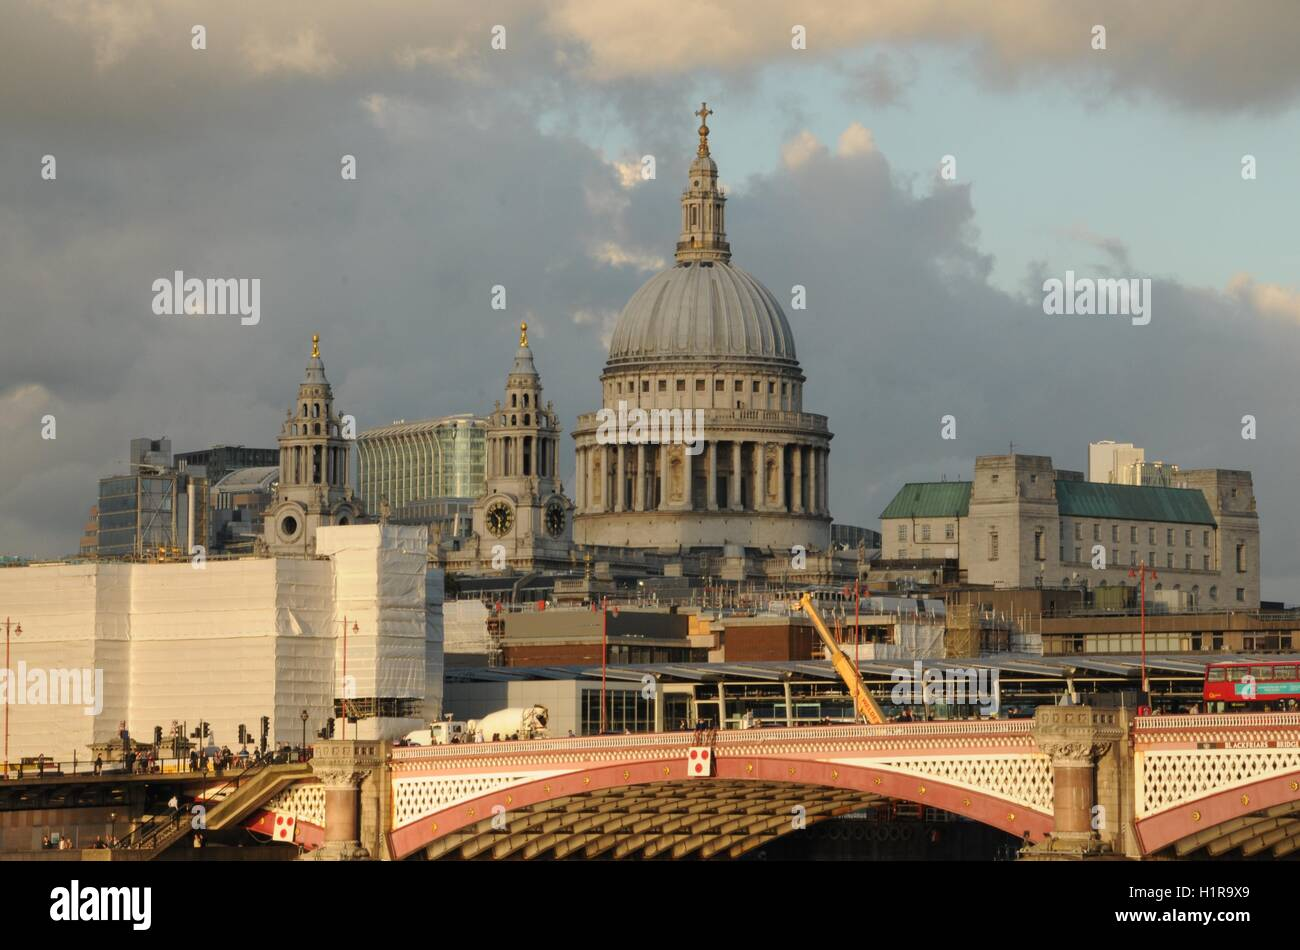 A horizontal image of St Paul's cathedral, from Southwark. - Stock Image